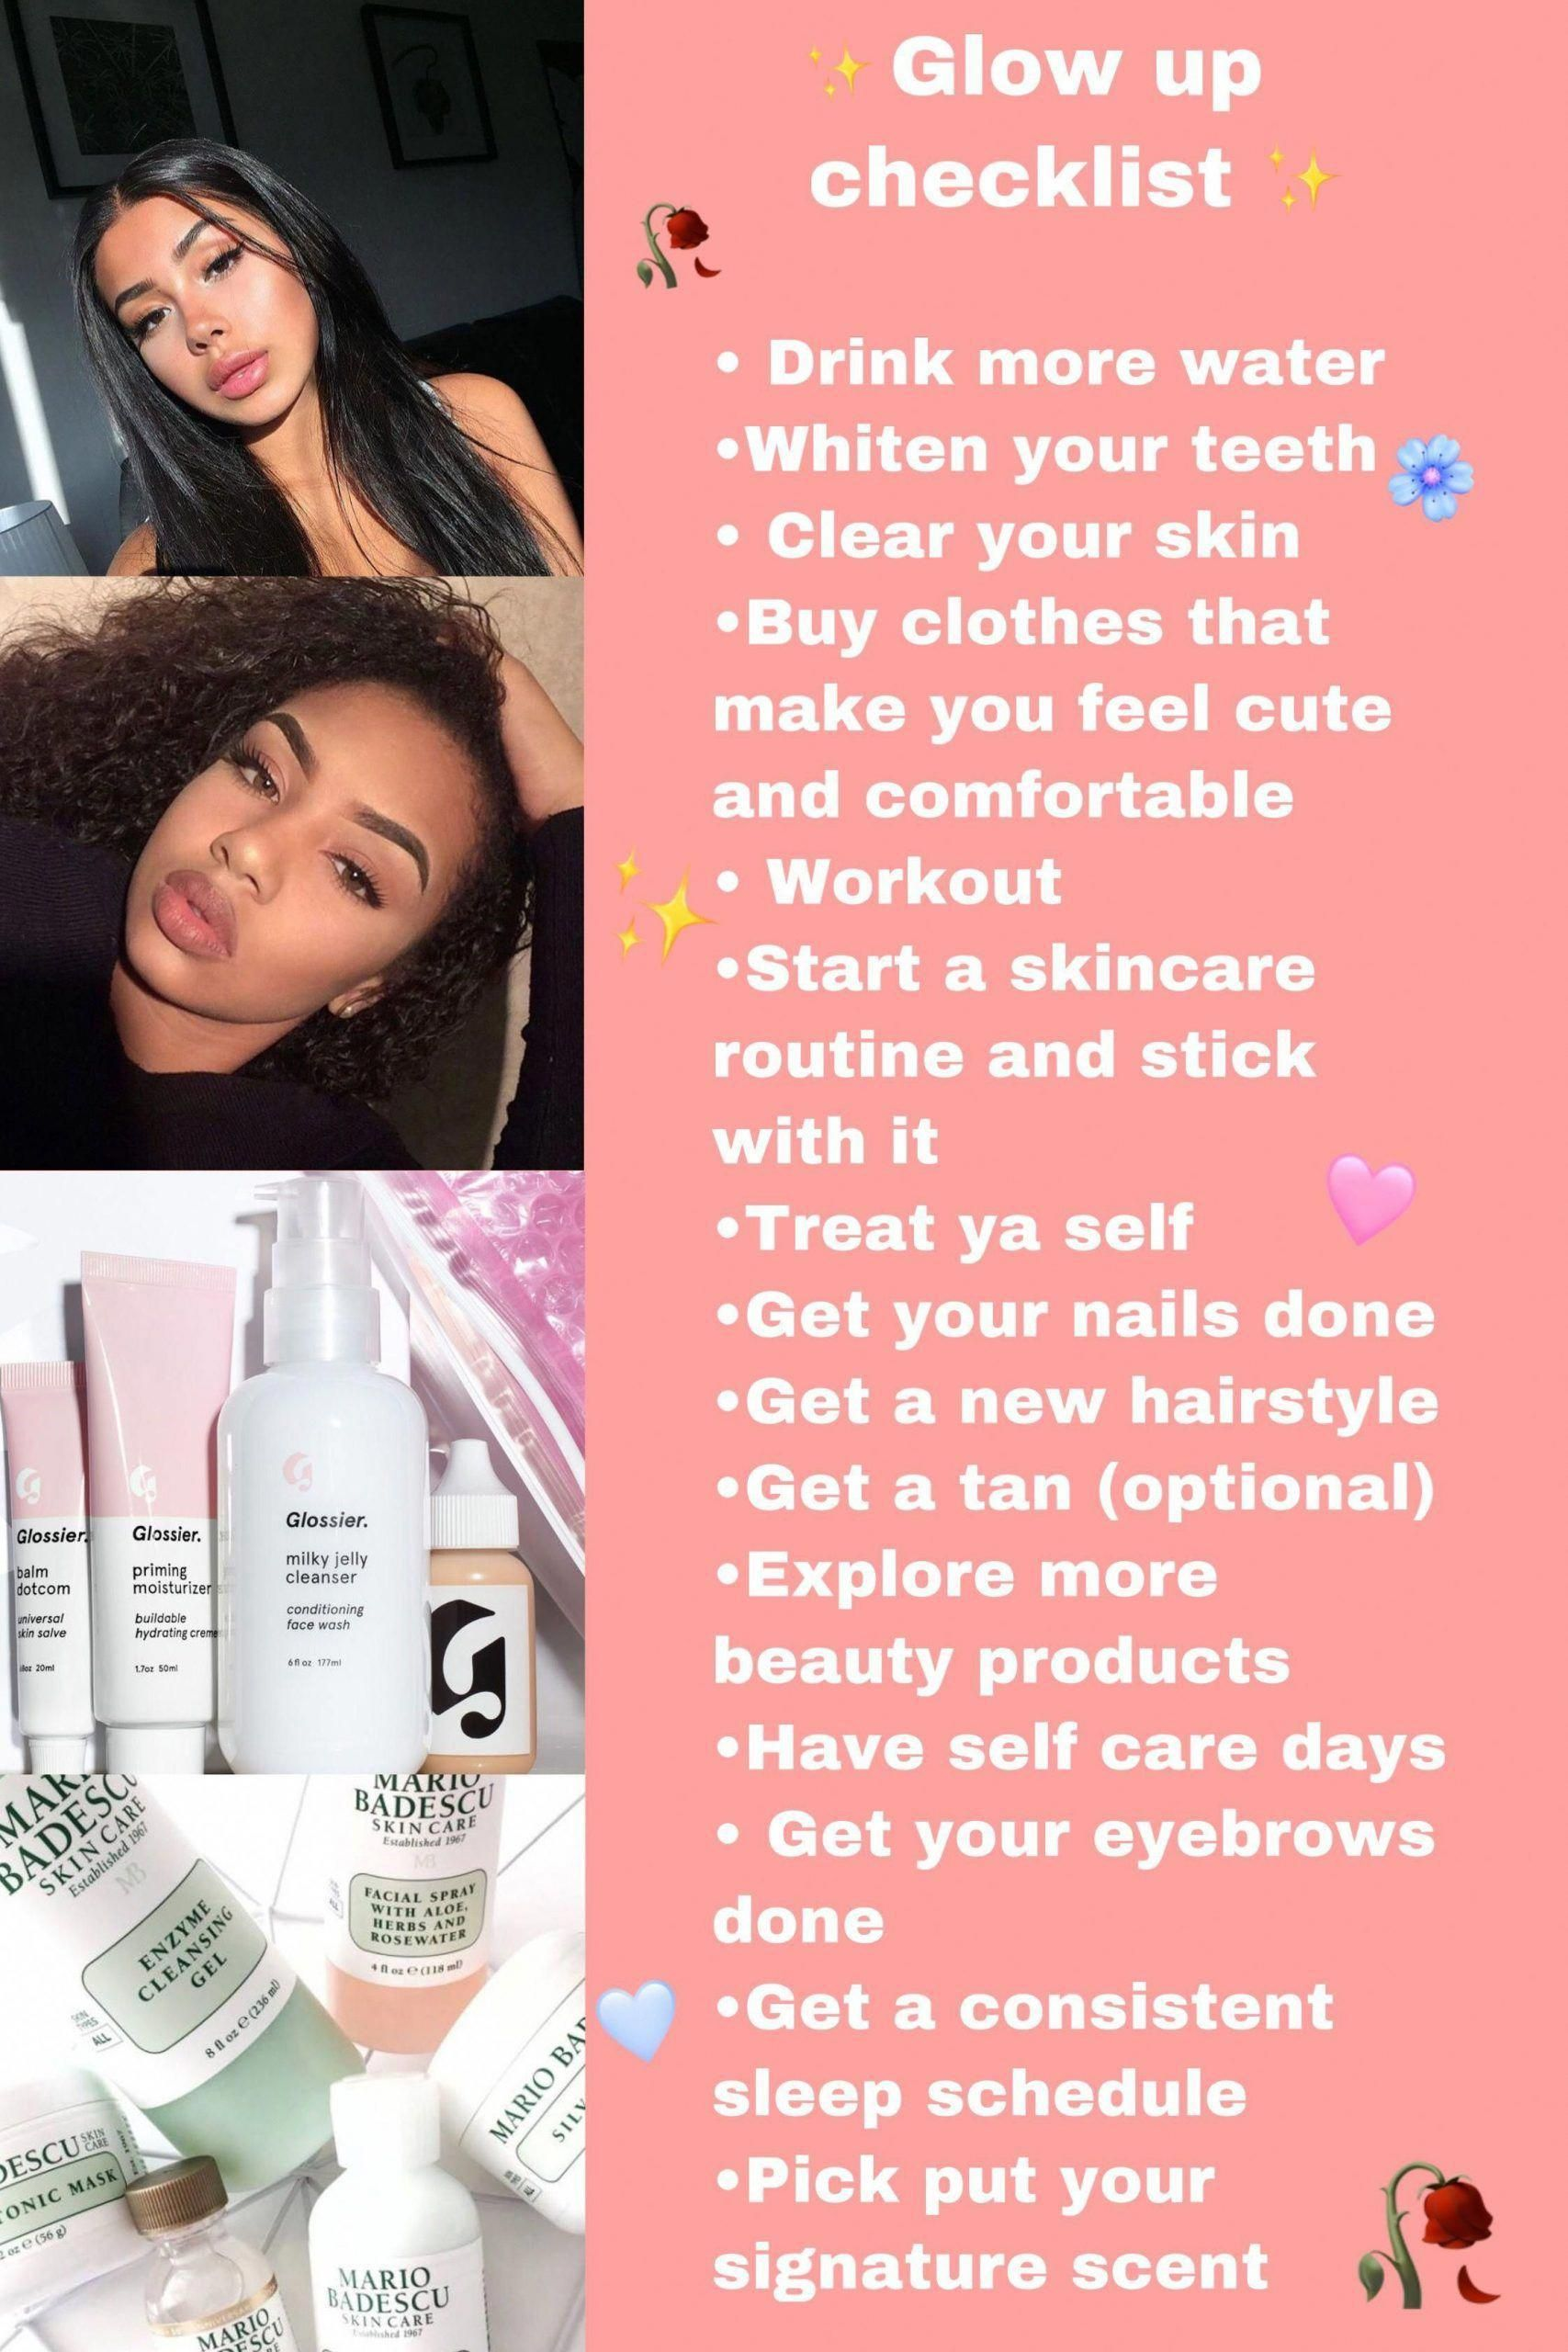 Combination Skin Care Tips Glowing Face How To Take Care Of Skin Everyday 20 Care Combination E In 2020 Combination Skin Care Clear Skin Tips Beauty Skin Care